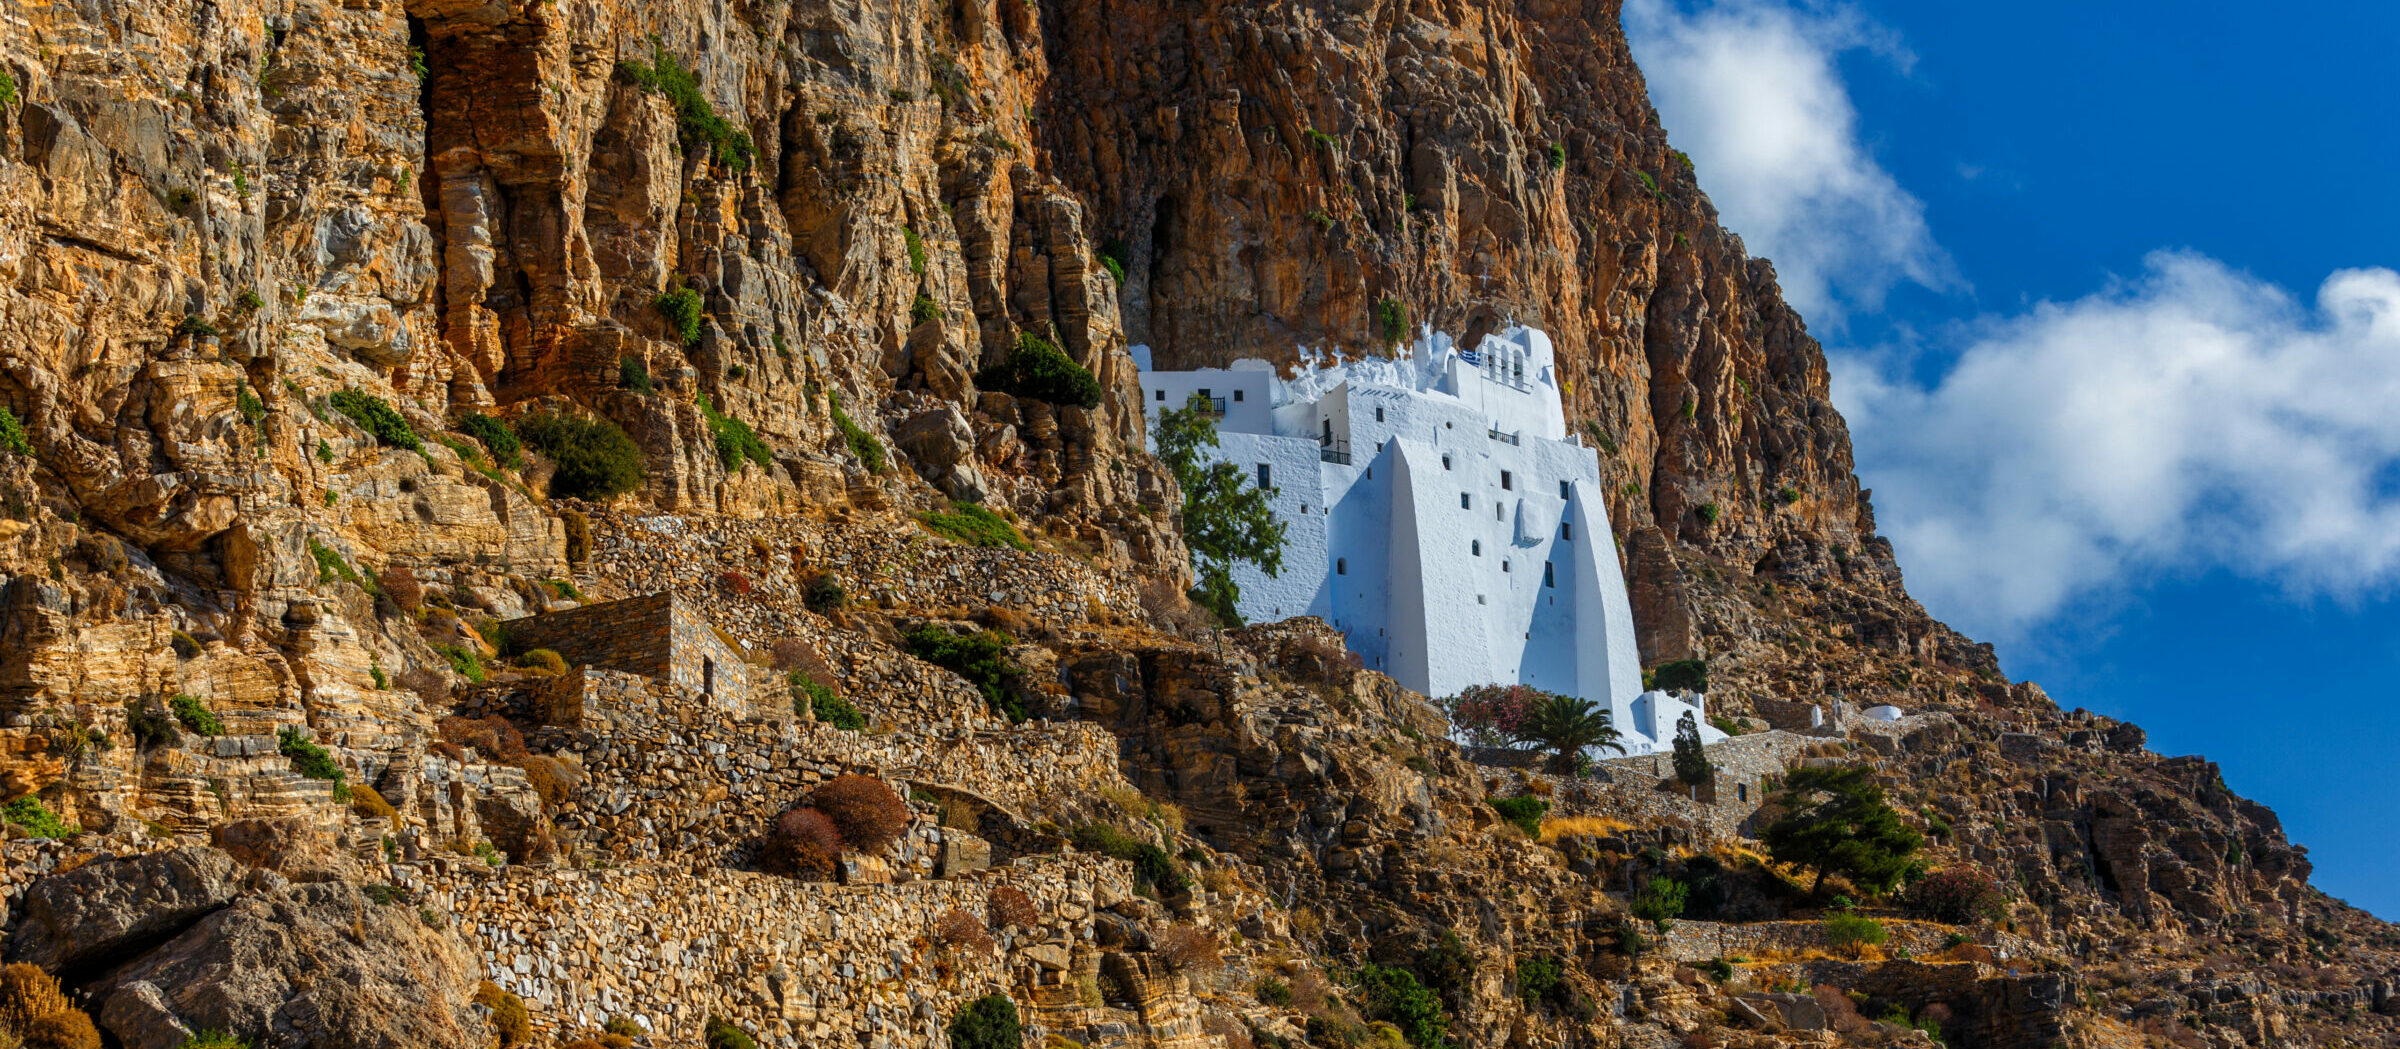 Amorgos: One of the Cyclades' amazing monasteries